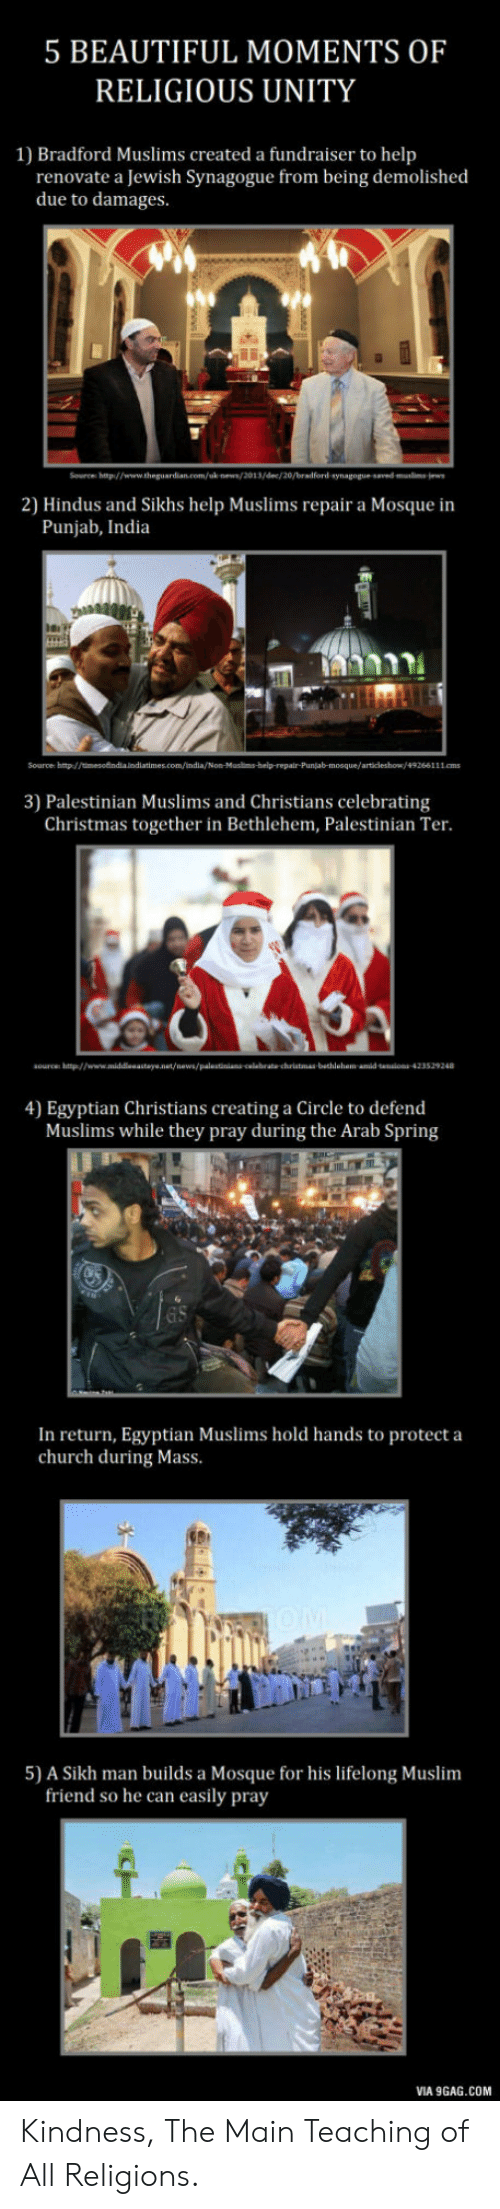 9gag, Beautiful, and Christmas: 5 BEAUTIFUL MOMENTS OF  RELIGIOUS UNITY  1) Bradford Muslims created a fundraiser to help  renovate a Jewish Synagogue from being demolished  due to damages.  2) Hindus and Sikhs help Muslims repair a Mosque in  Punjab, India  Source hp/  3) Palestinian Muslims and Christians celebrating  Christmas together in Bethlehem, Palestinian Ter.  4) Egyptian Christians creating a Circle to defend  Muslims while they pray during the Arab Spring  In return, Egyptian Muslims hold hands to protect a  church during Mass  5) A Sikh man builds a Mosque for his lifelong Muslim  friend so he can easily pray  VIA 9GAG.COM Kindness, The Main Teaching of All Religions.